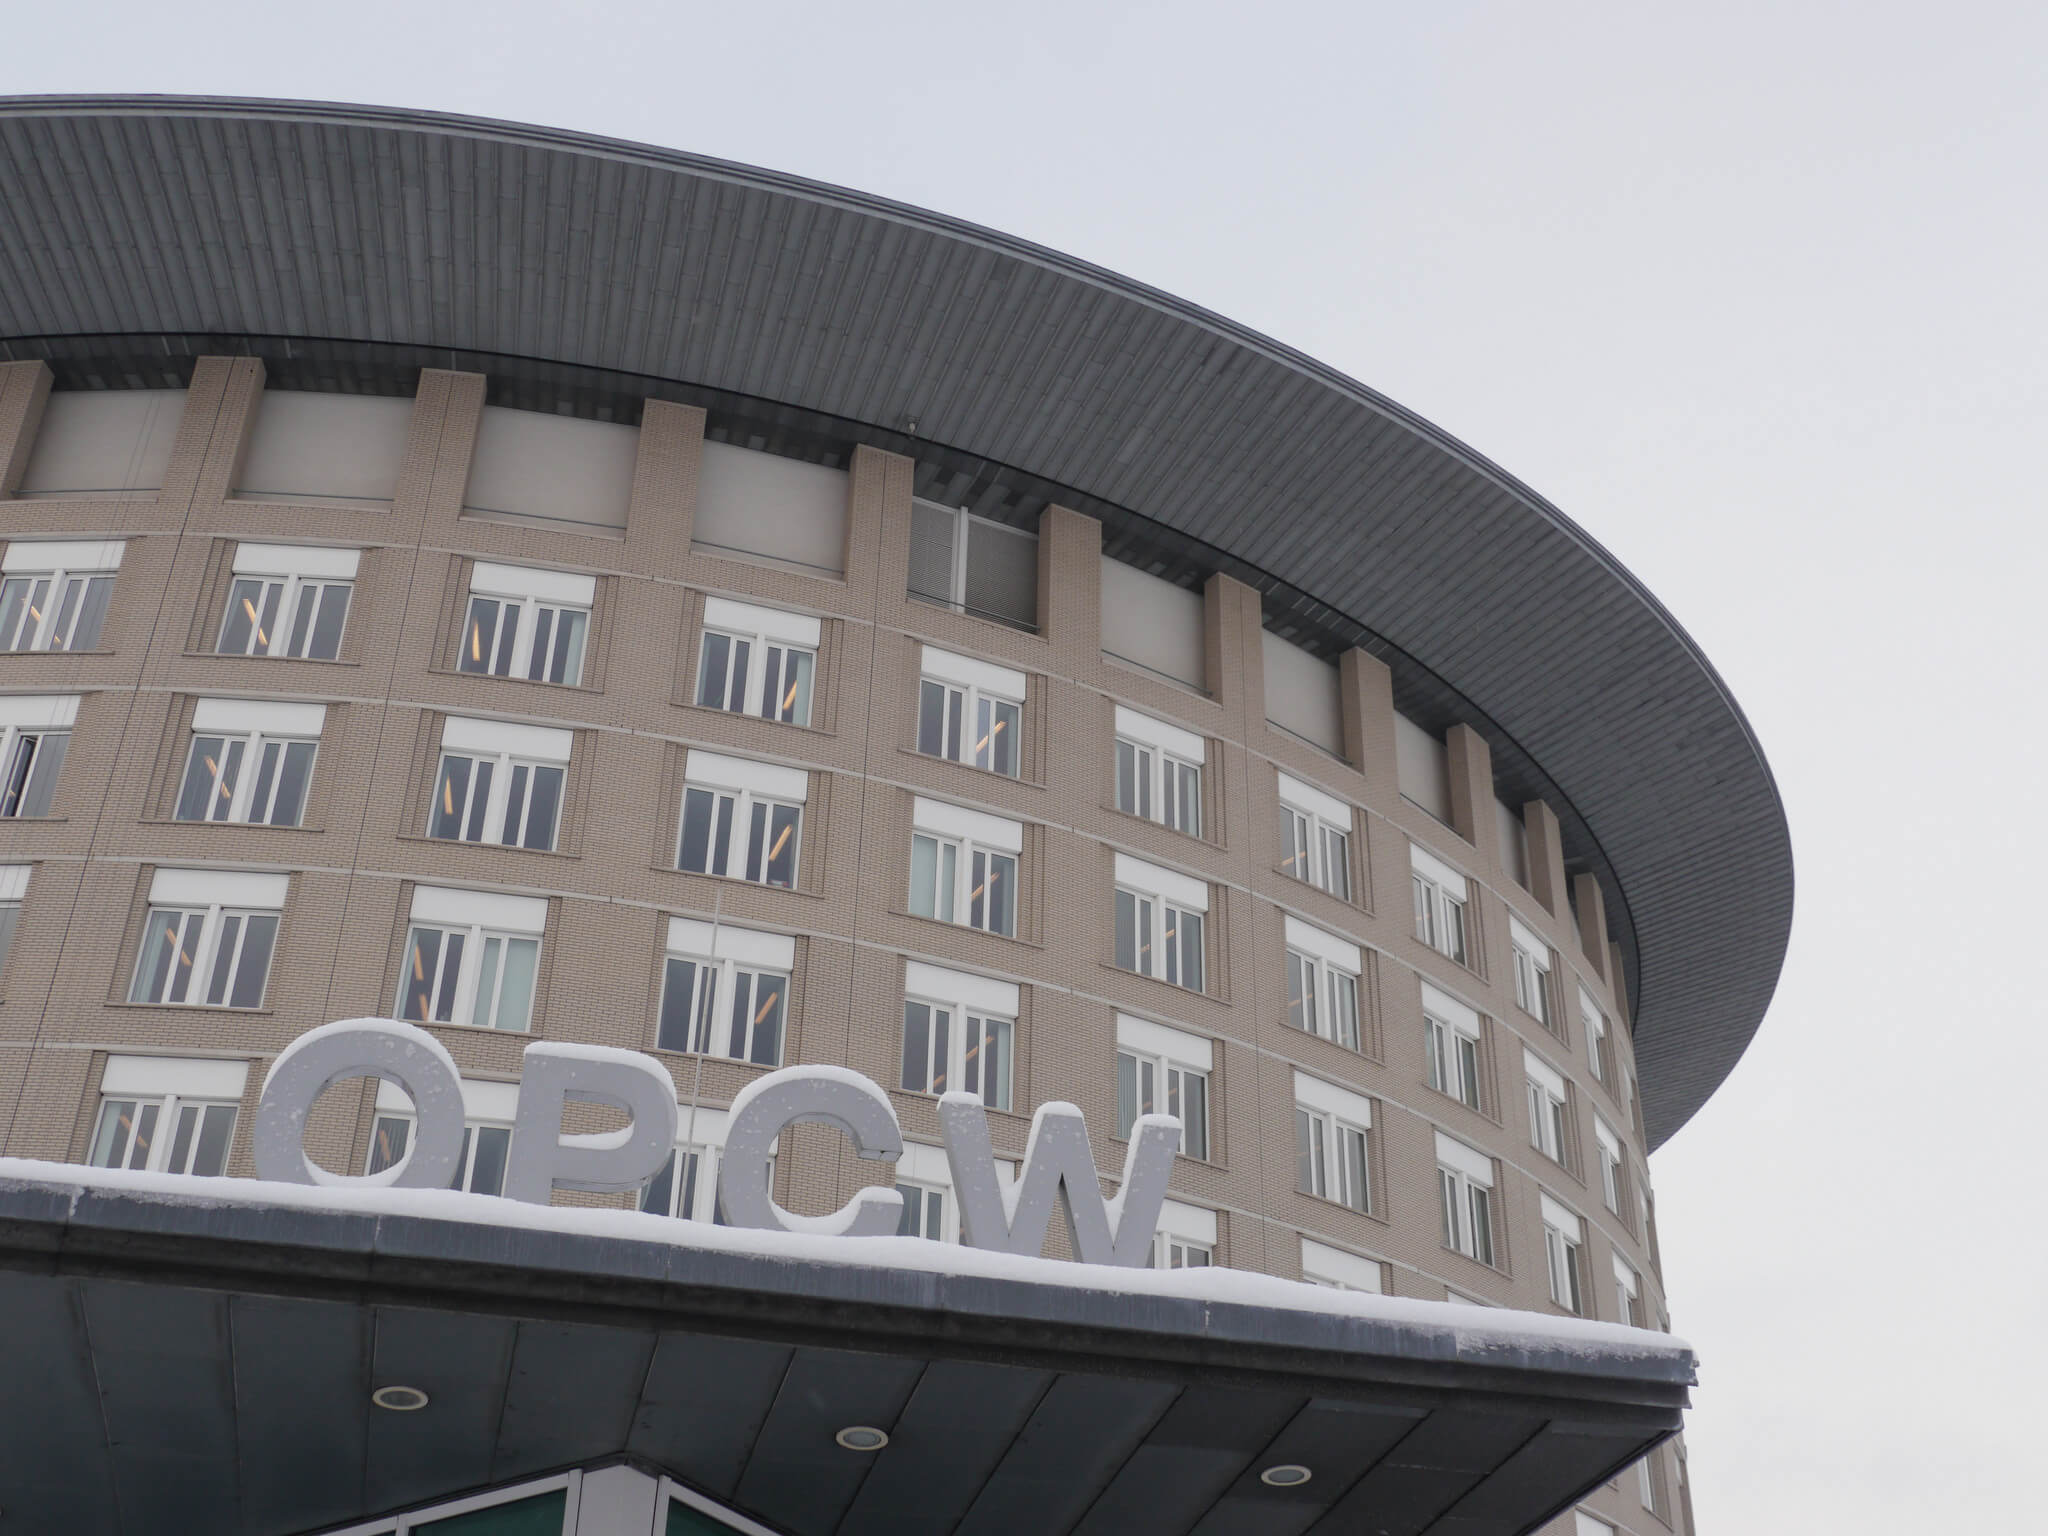 The OPCW headquarters © OPCW / Flickr